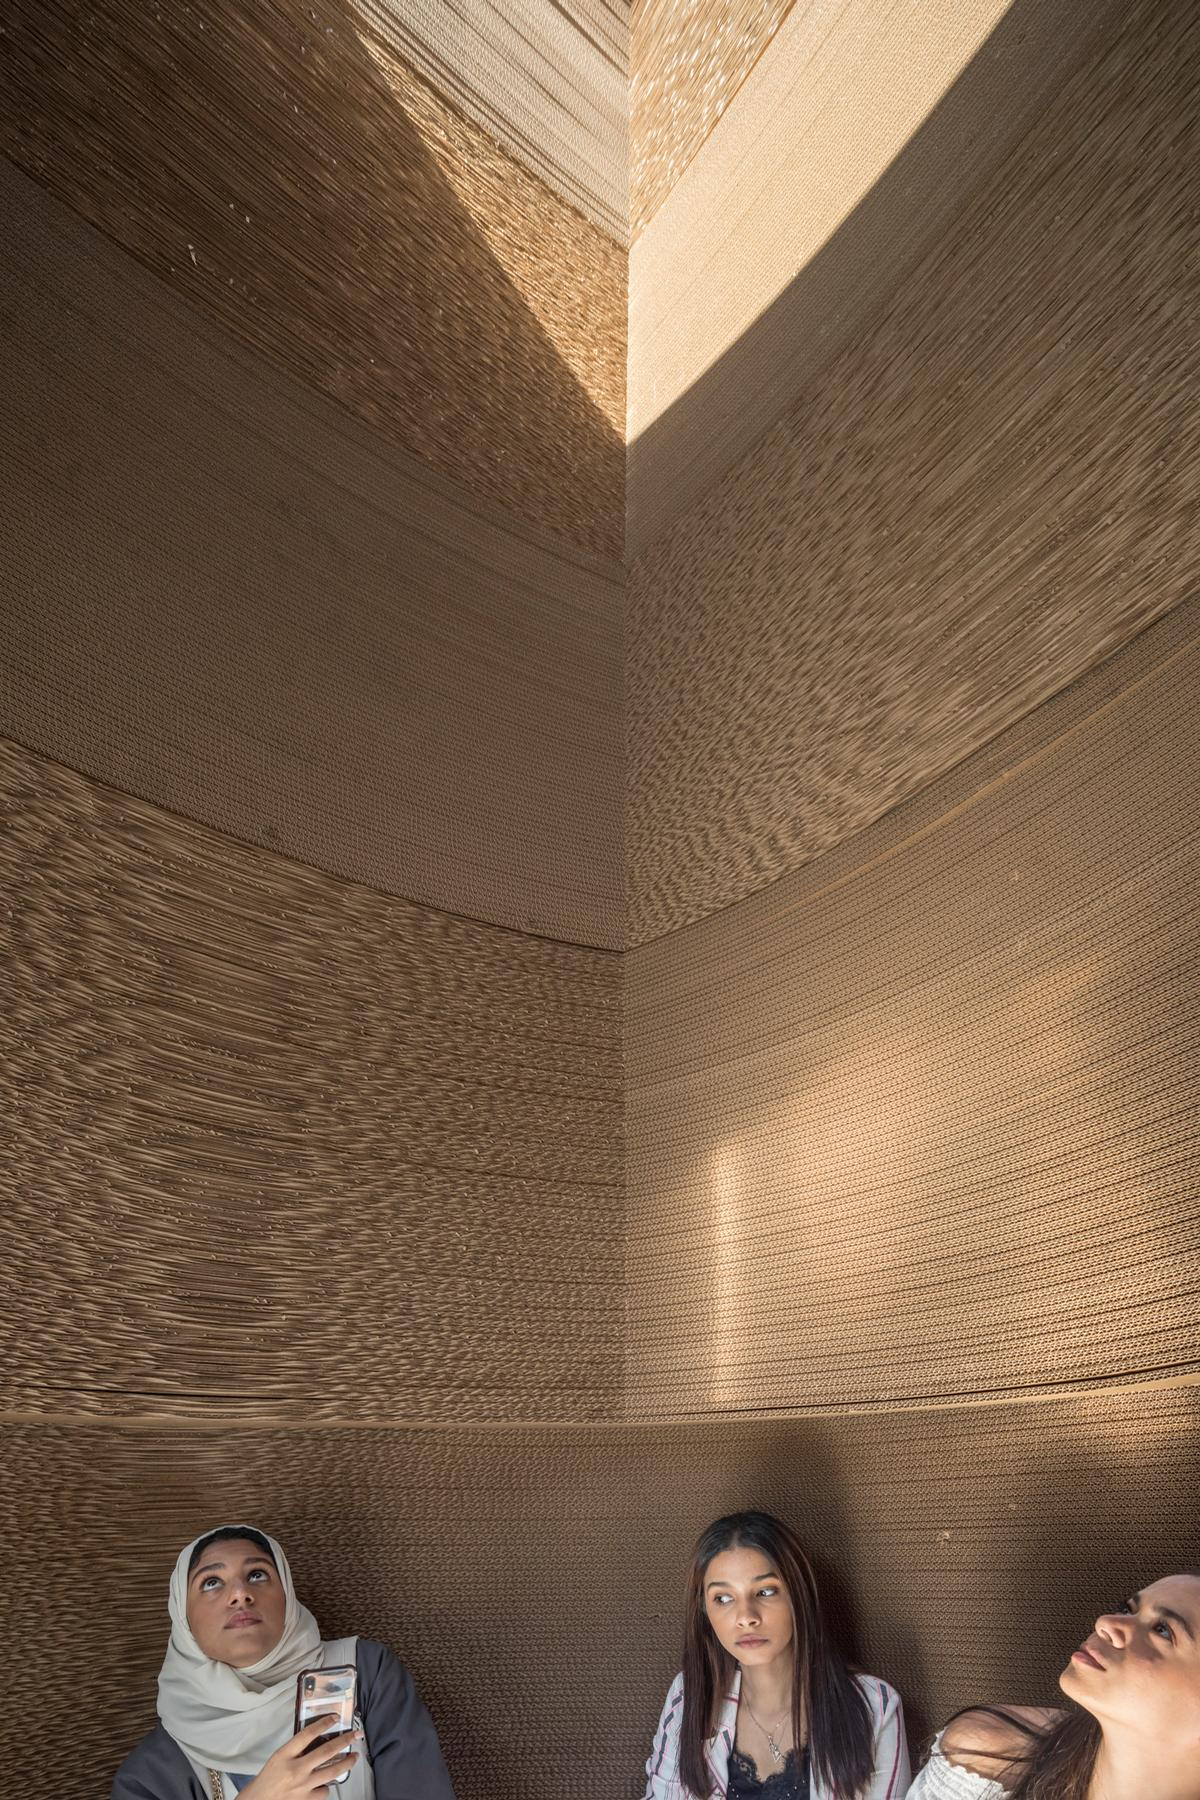 The circular interior becomes square as the tower rises